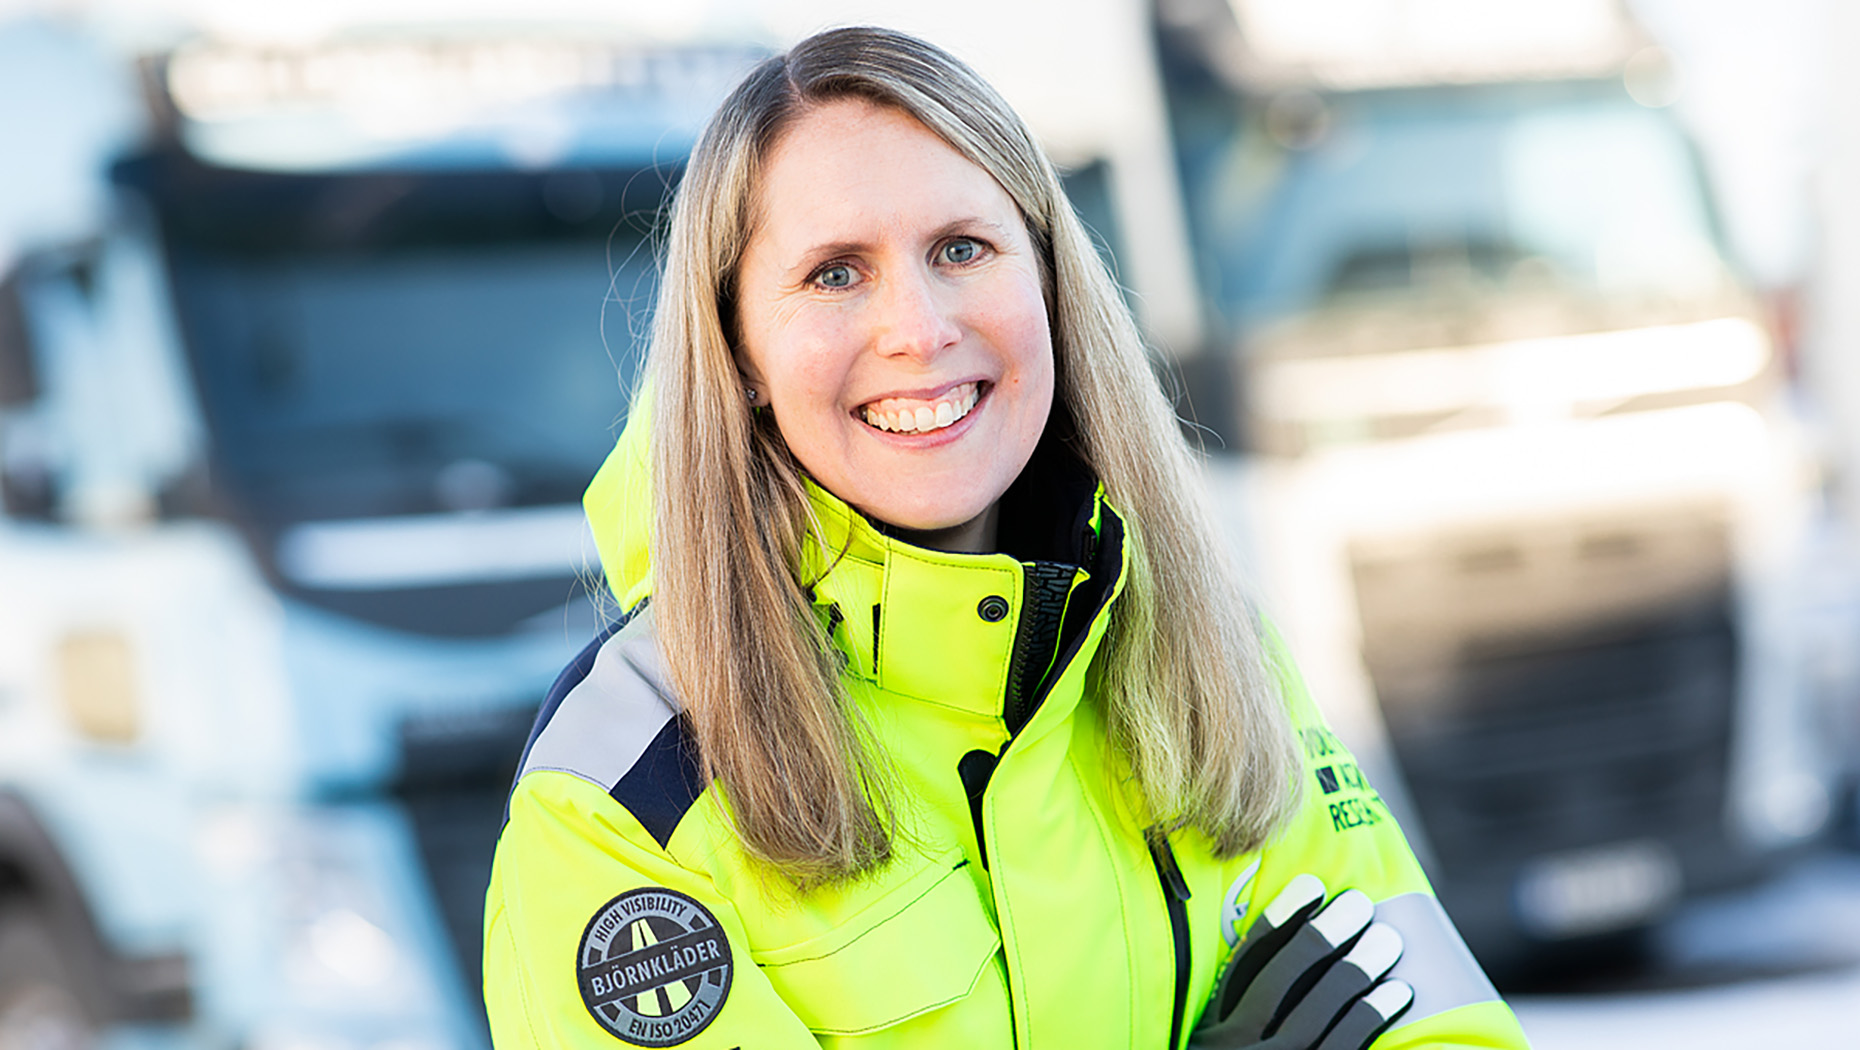 Anna Theander, Accident Research Team Leader at Group Trucks Technology, Volvo Group